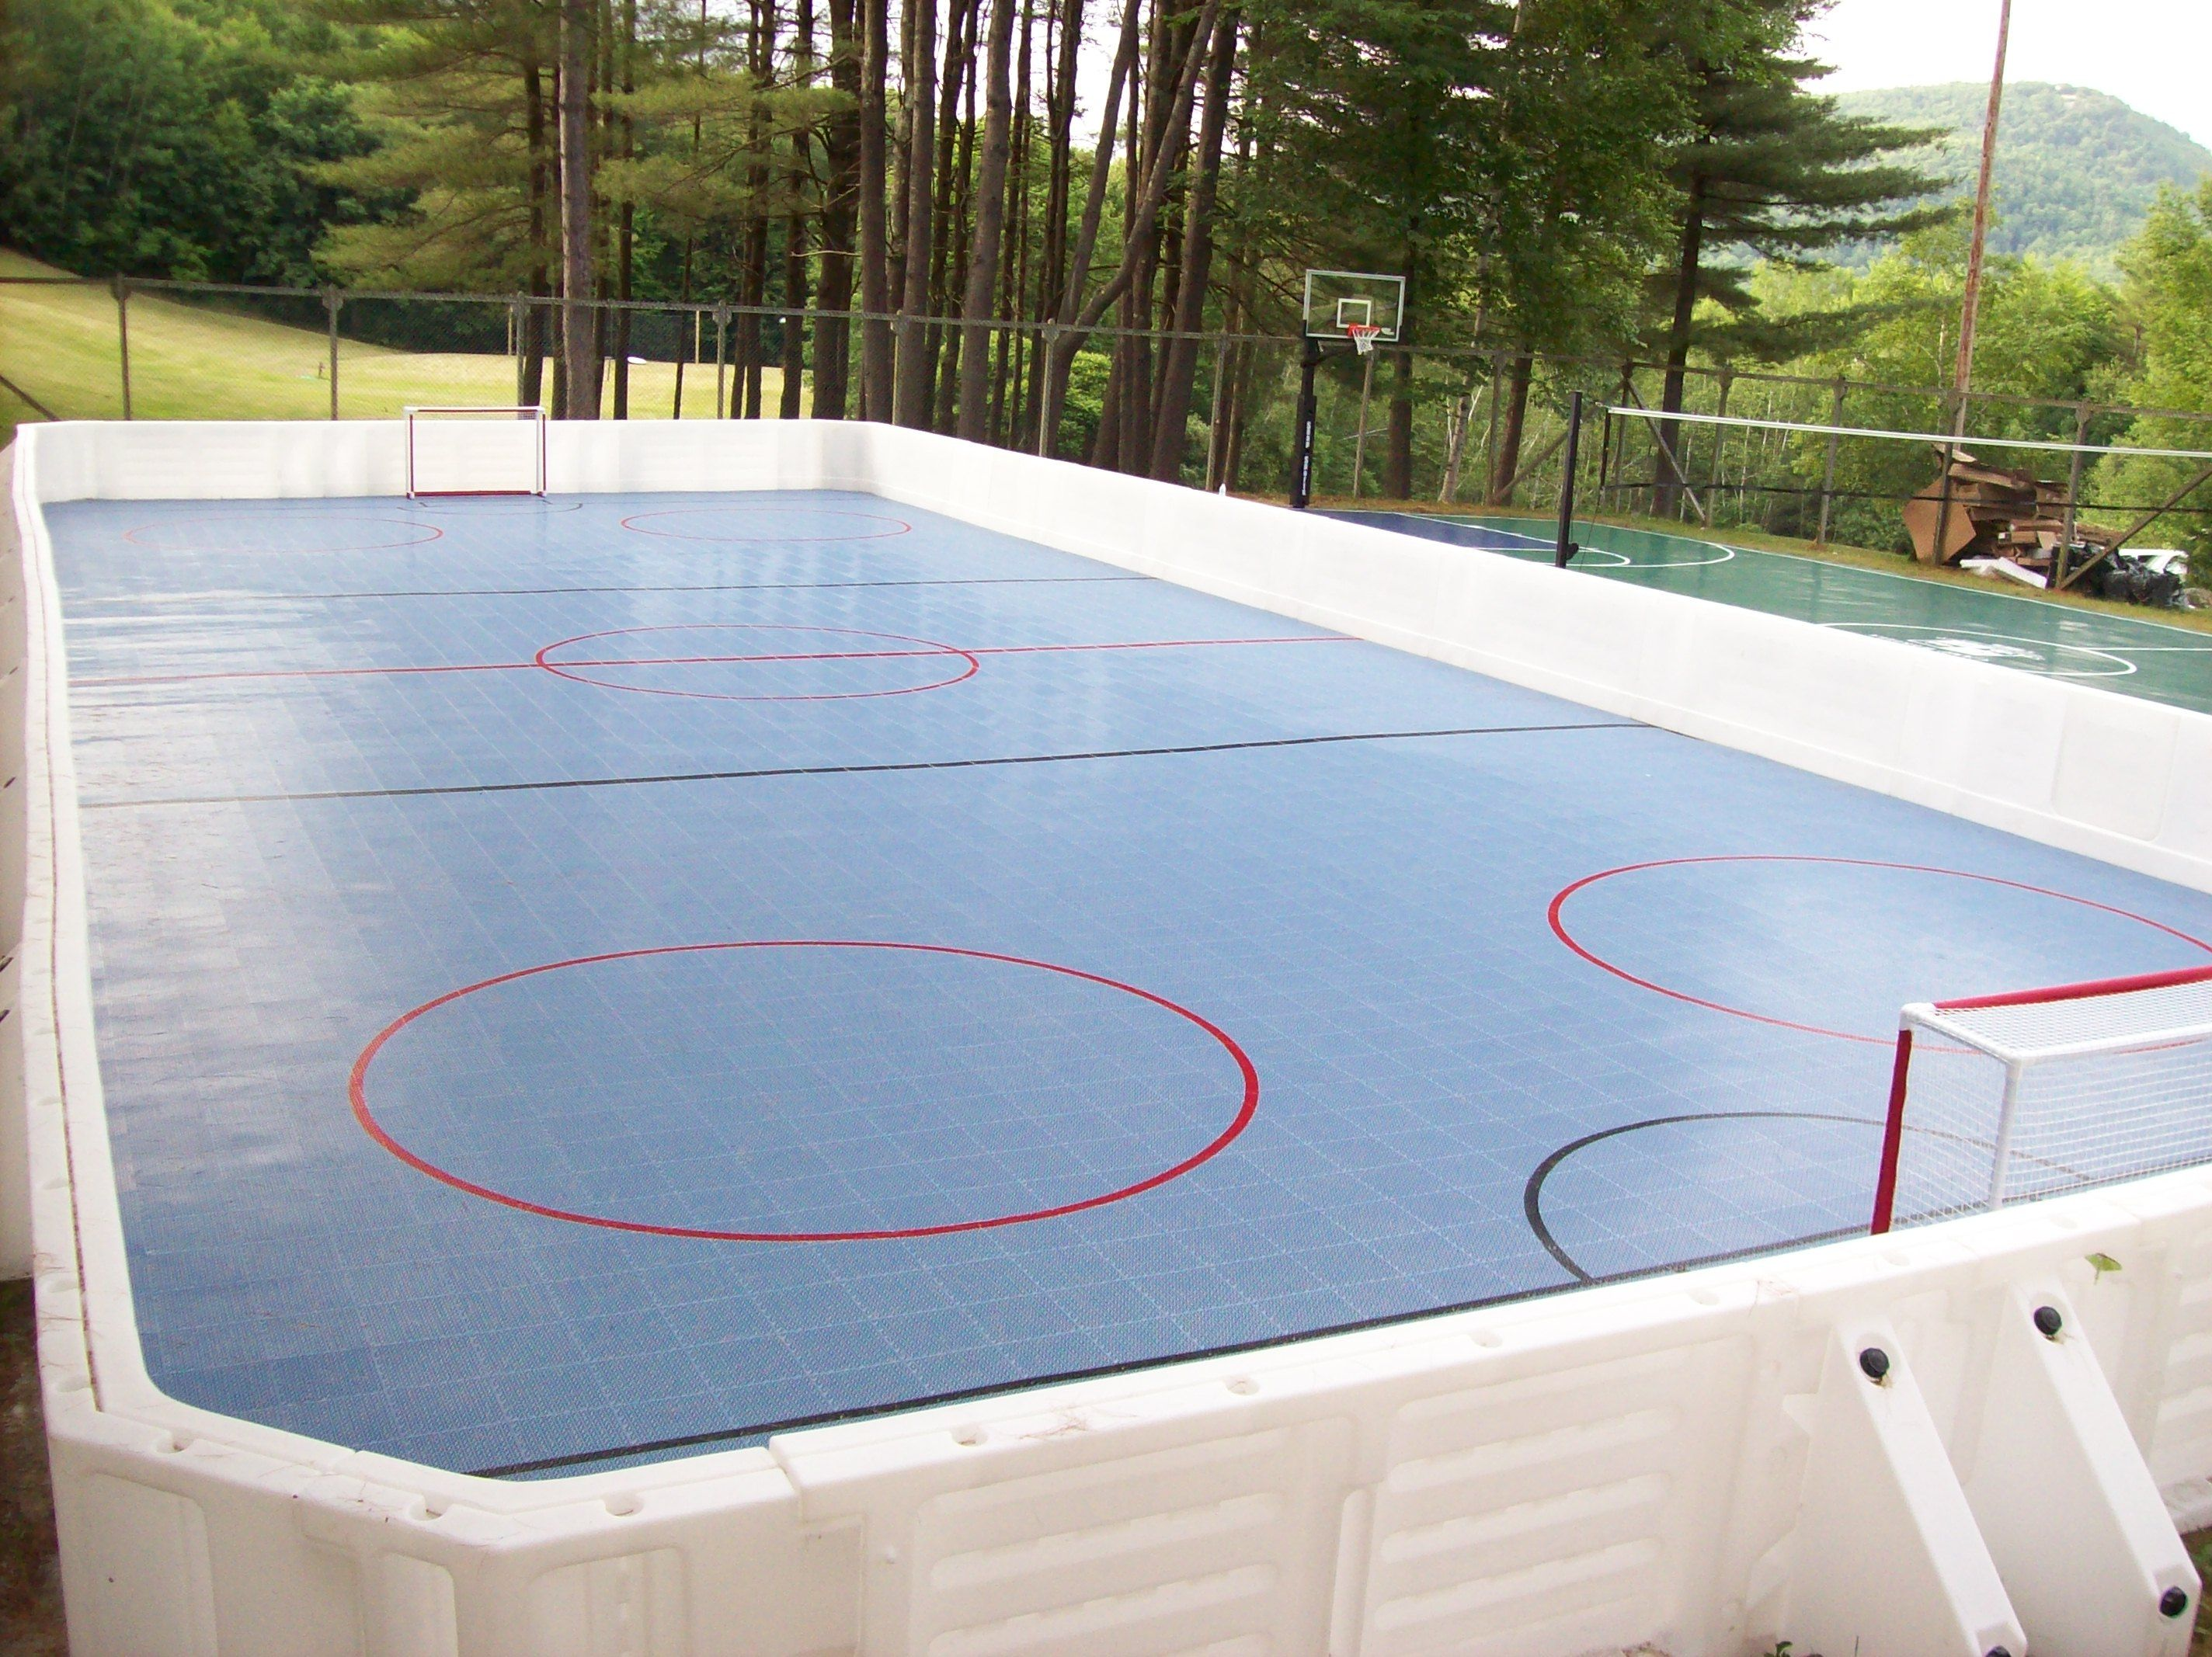 Bon Hockey Rink Set Up At Camp With ProWall Dasher Boards. Backyard ...